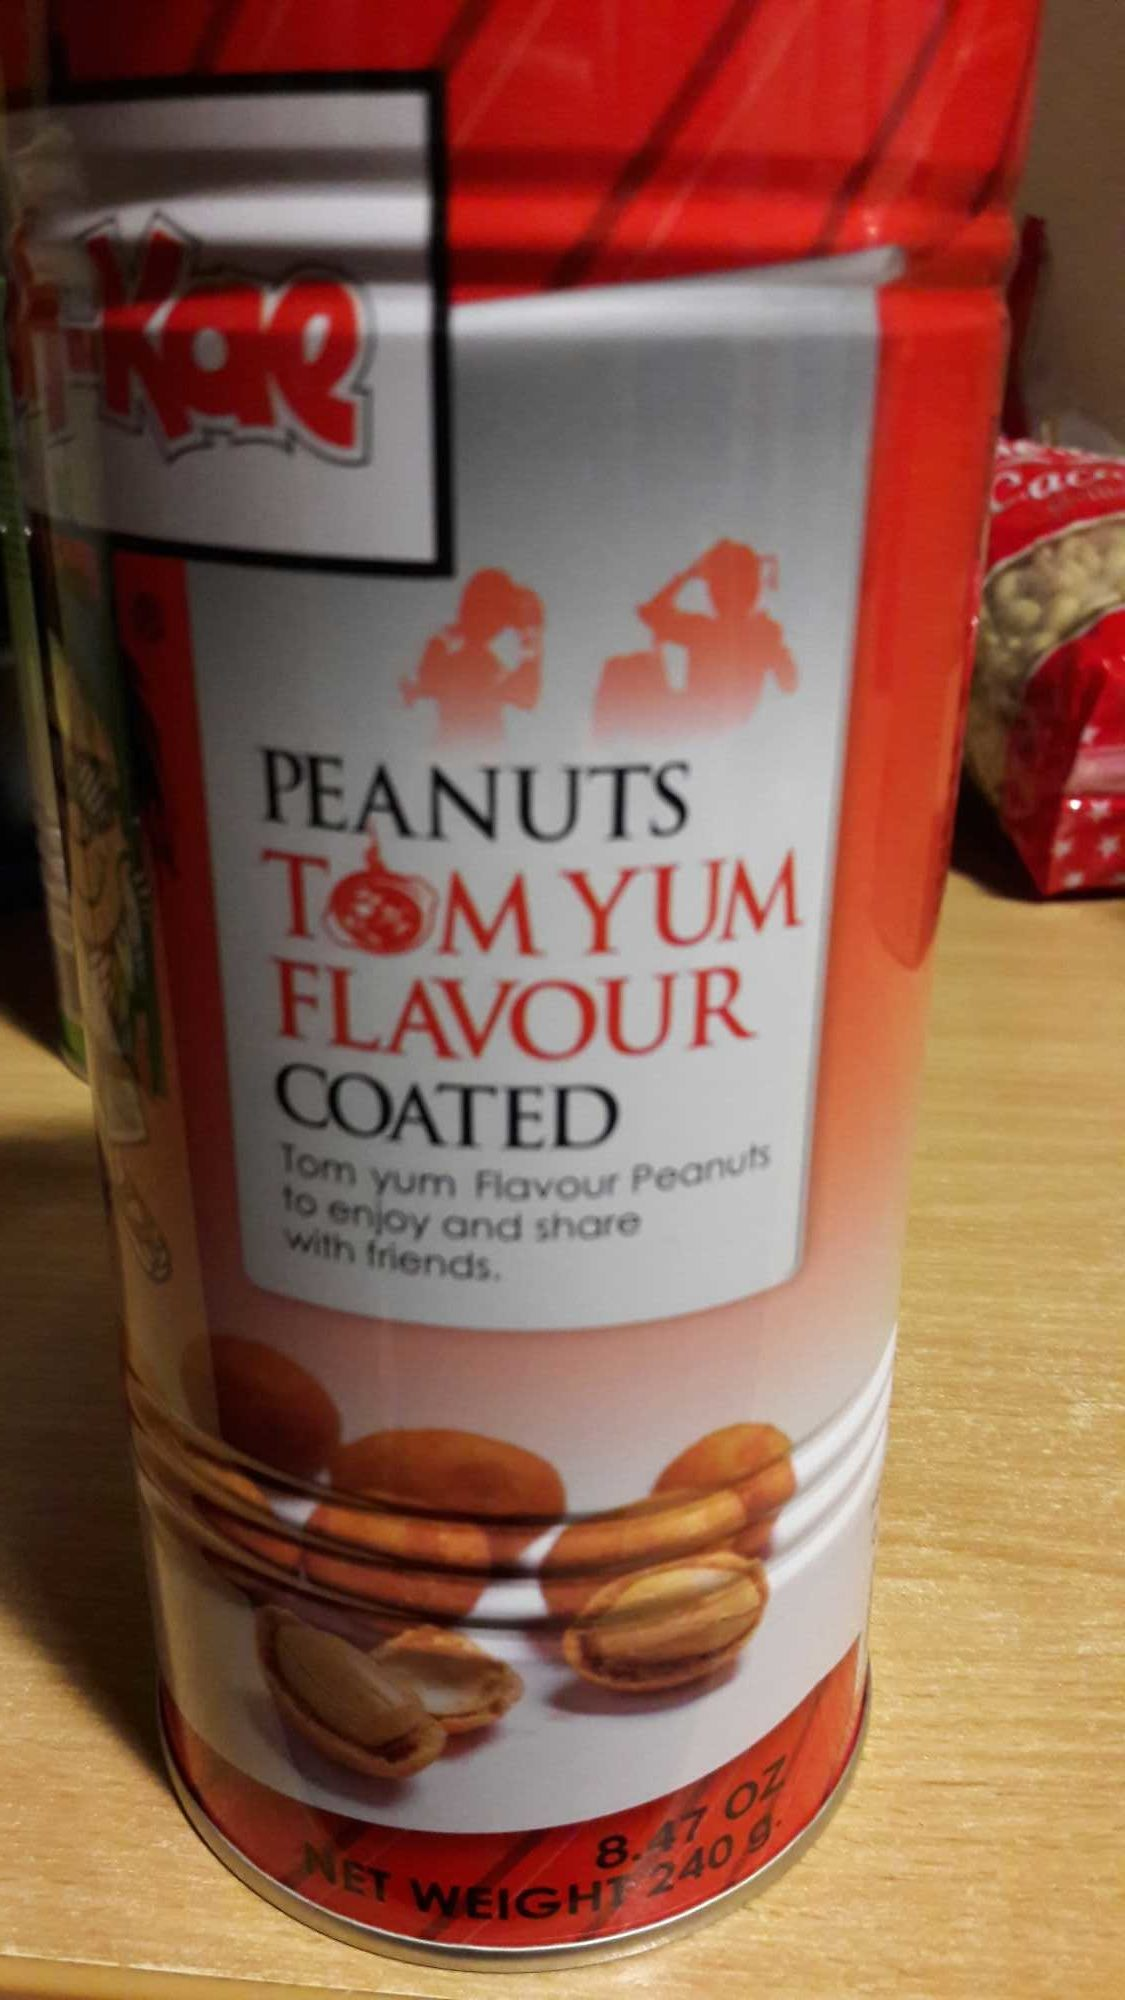 Peanuts Tom Yum Flavour Coated - Product